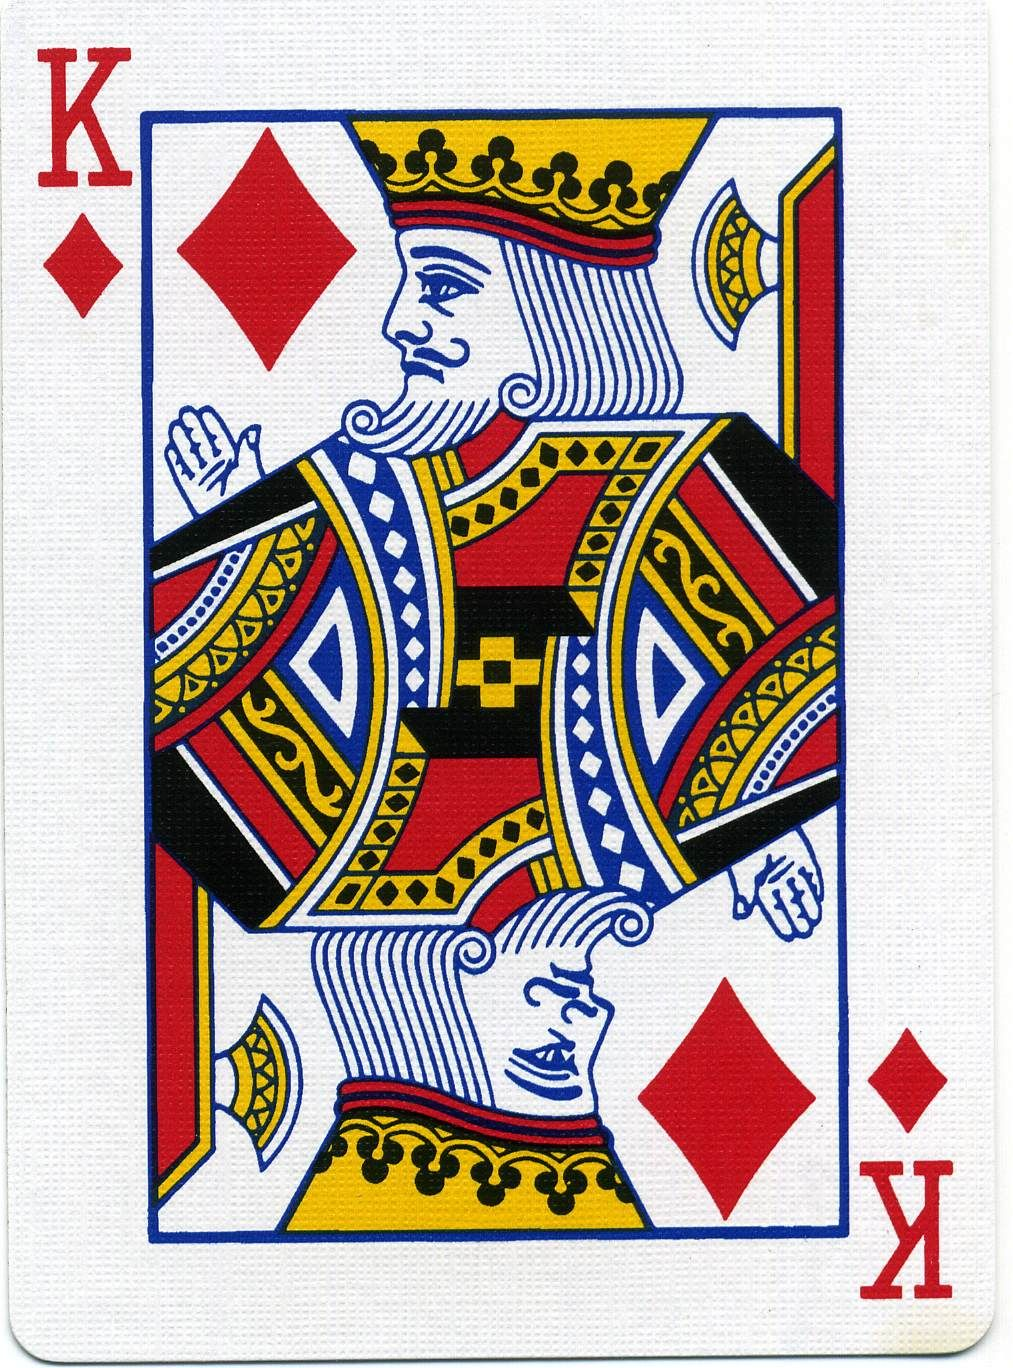 king of diamonds - Google Search - dekupaj in 2018 ...